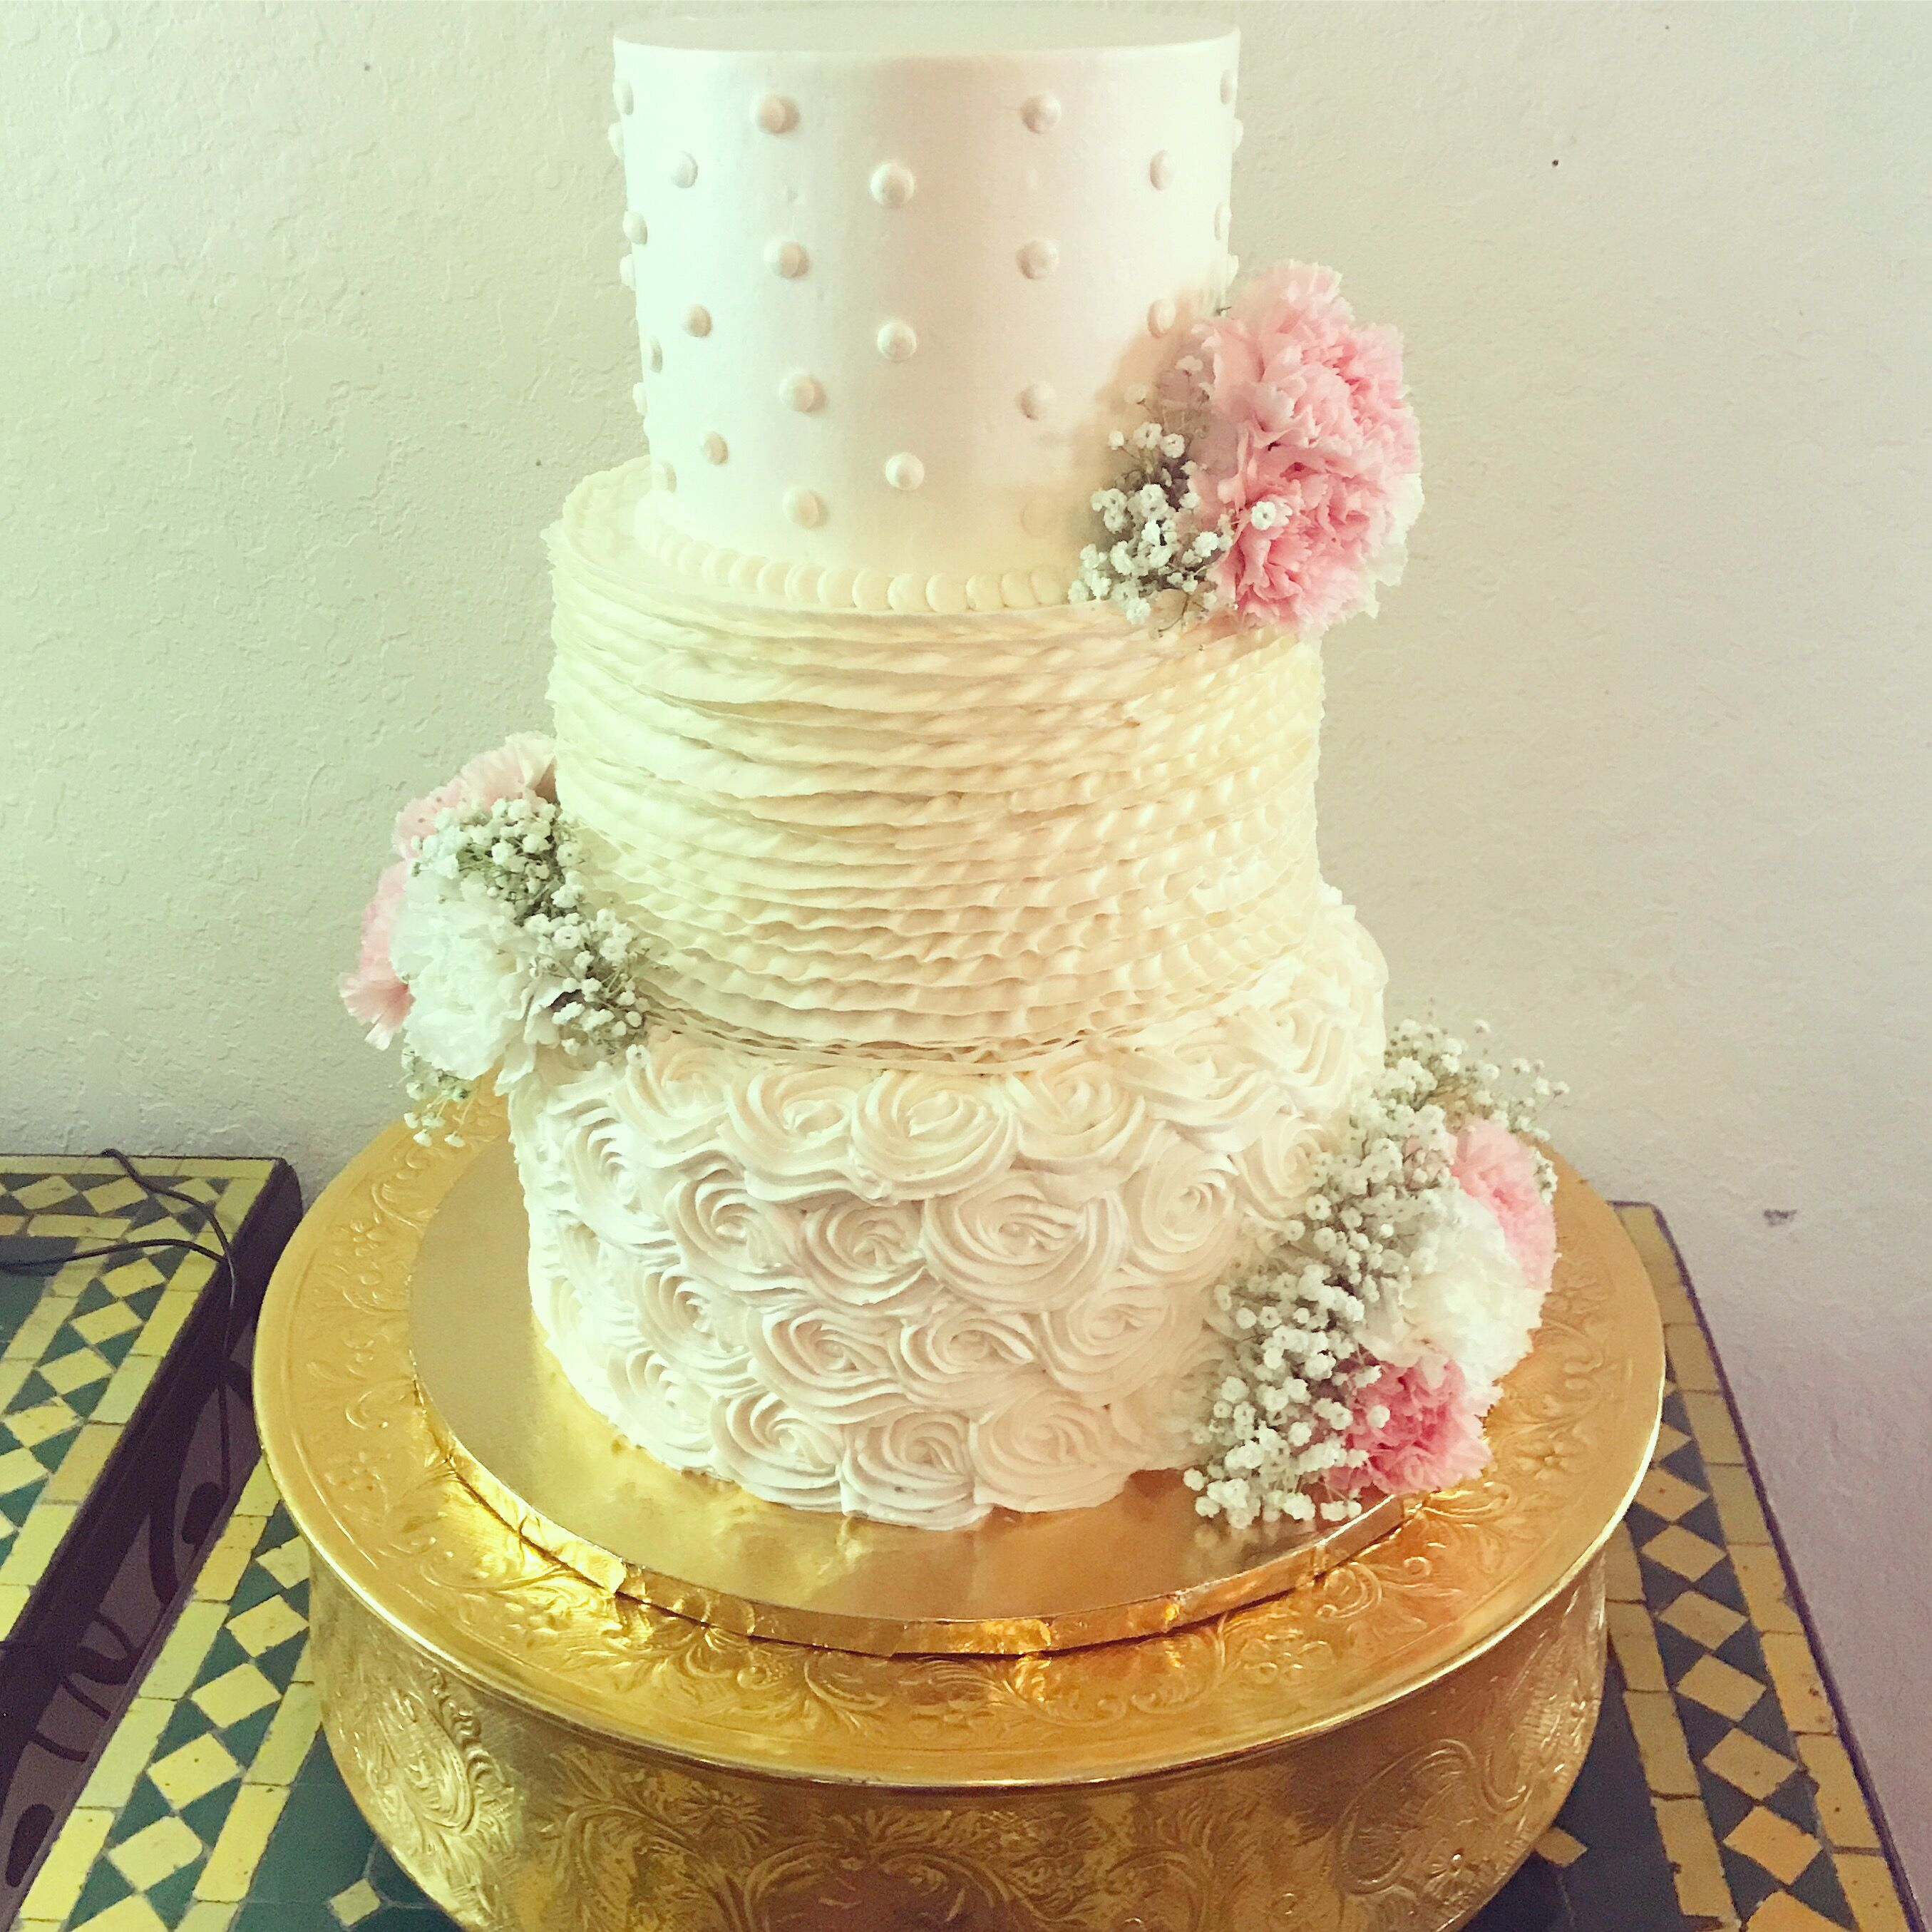 Wedding Cake Bakeries in Tampa, FL - The Knot